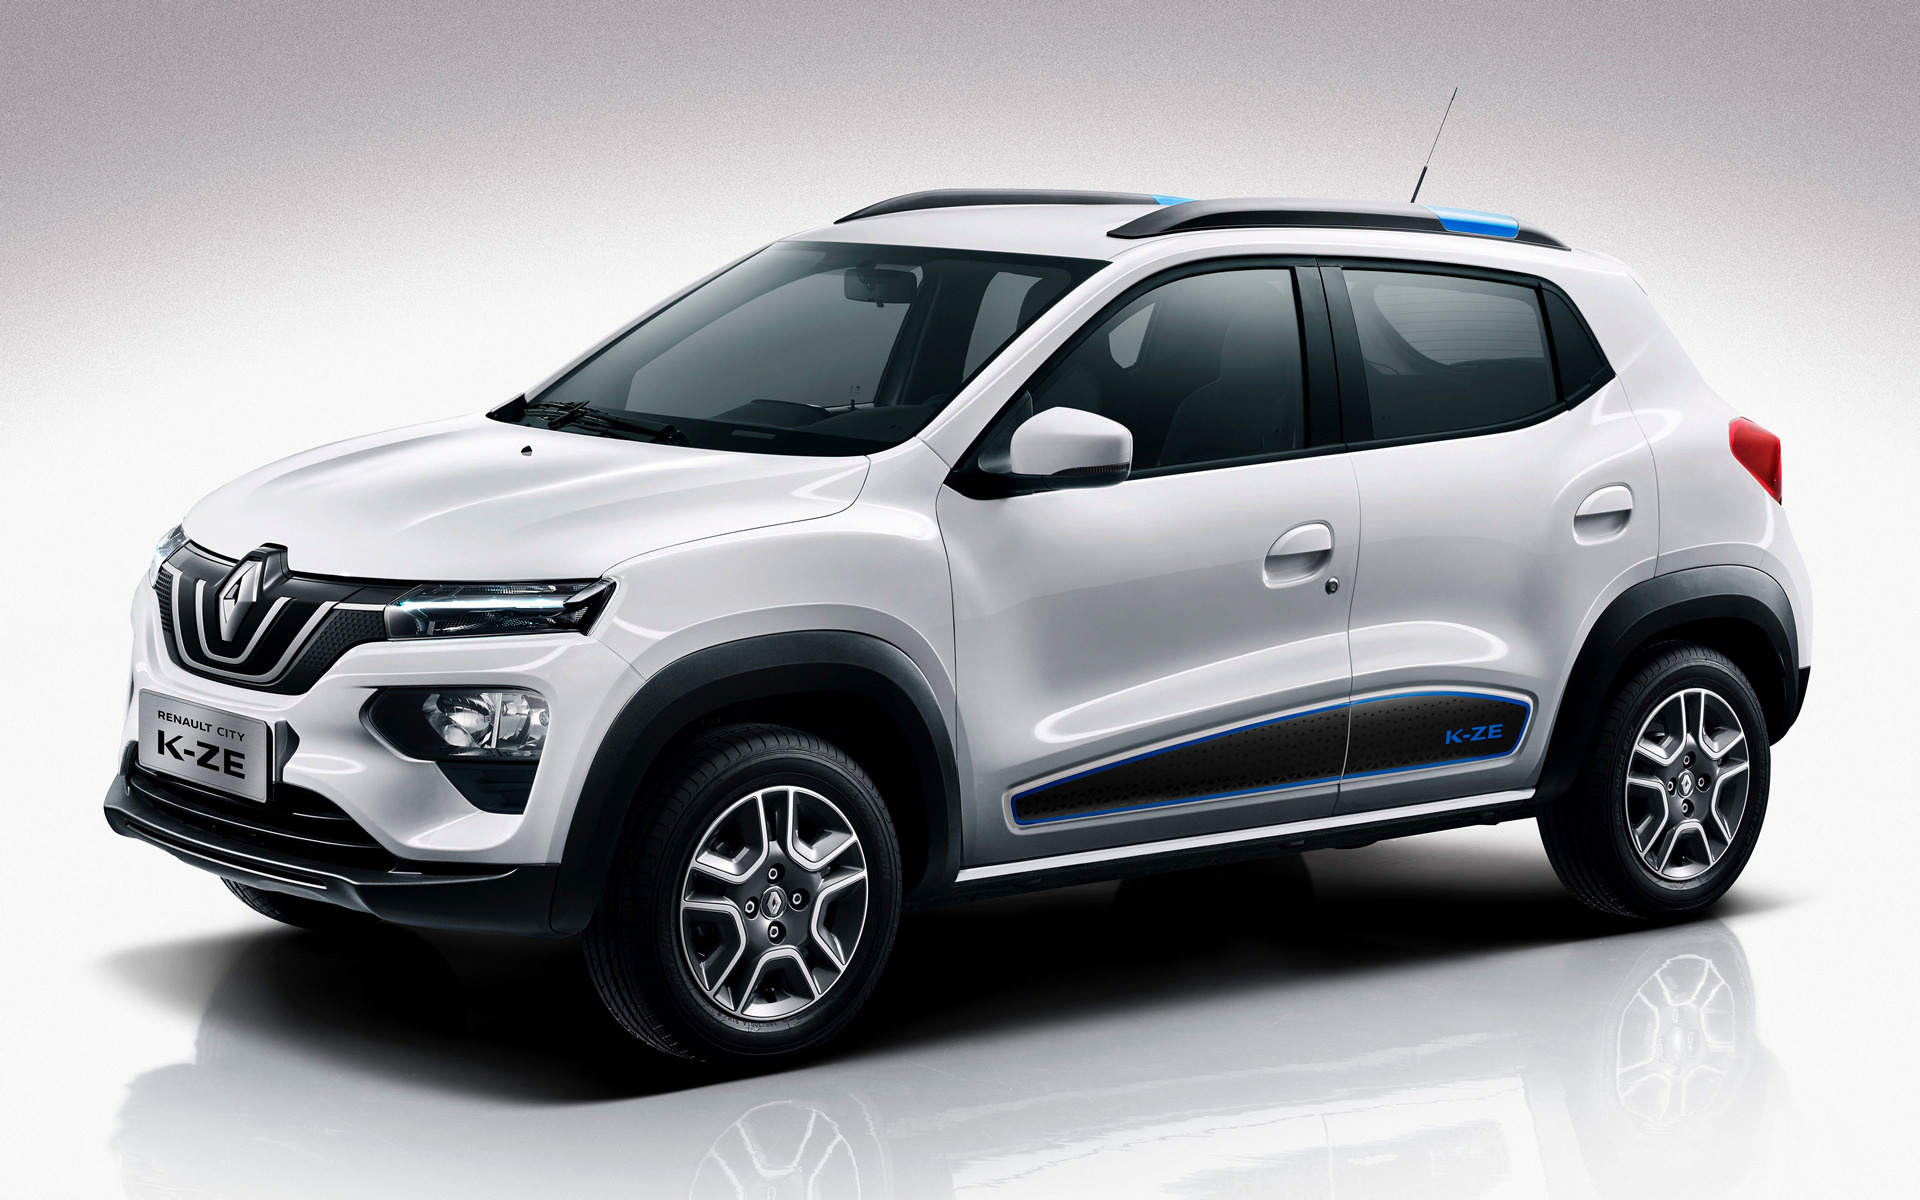 2019 Renault City K-ZE (CN) - Wallpapers and HD Images ...